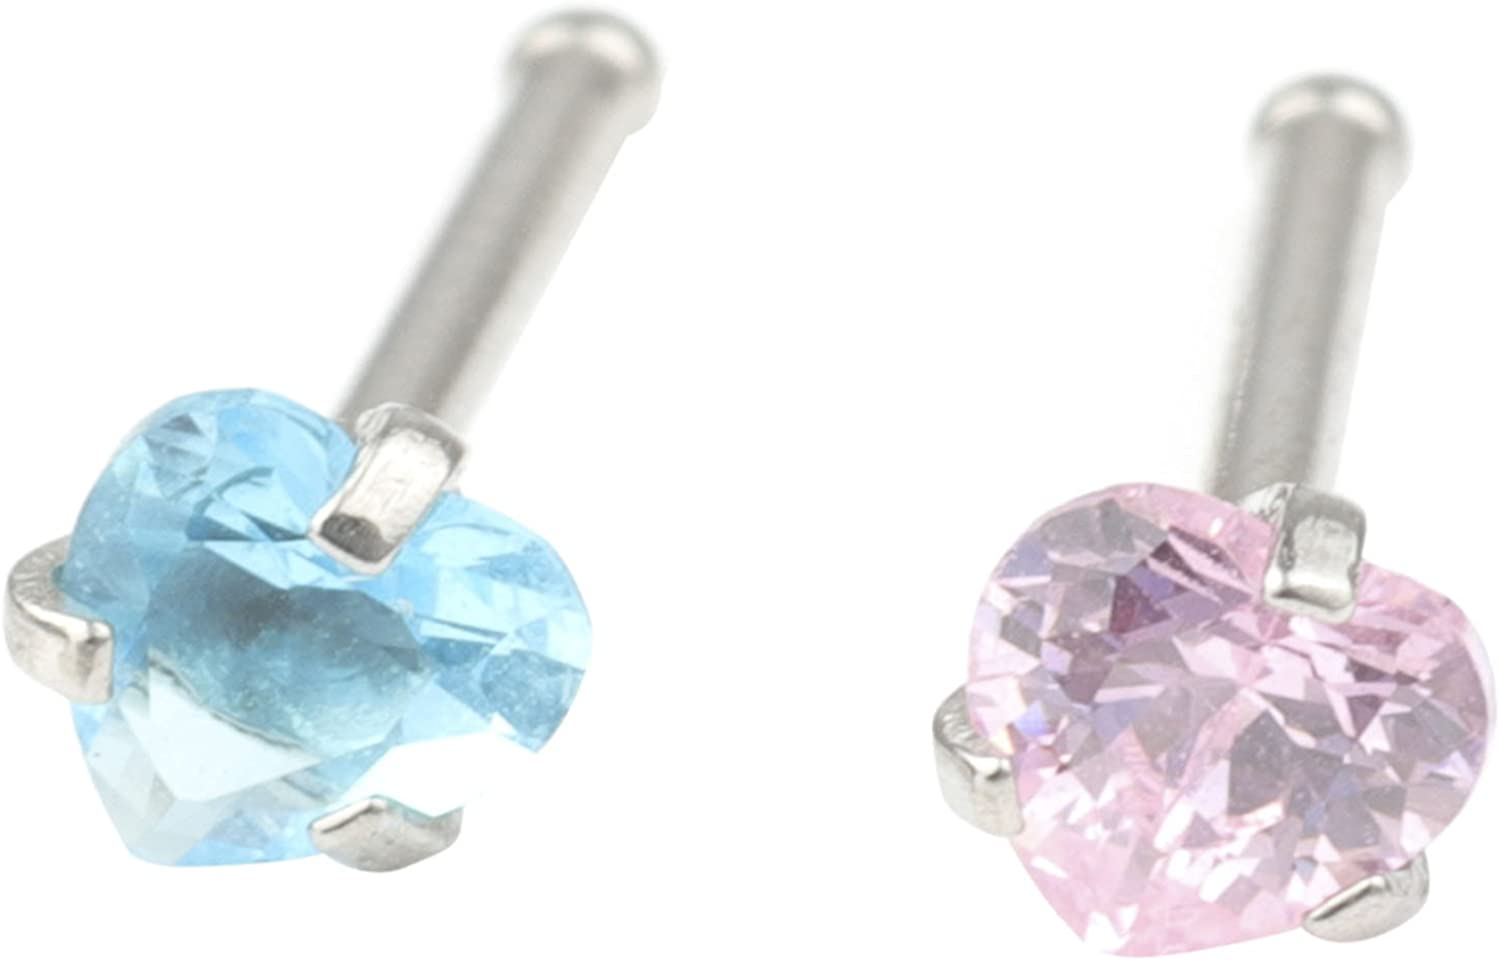 CM's 20G 2 Pcs Stainless Steel Nose Rings Studs Piercing Body Jewelry 2.5mm Blue & Pink Heart Shape Cubic Zirconia